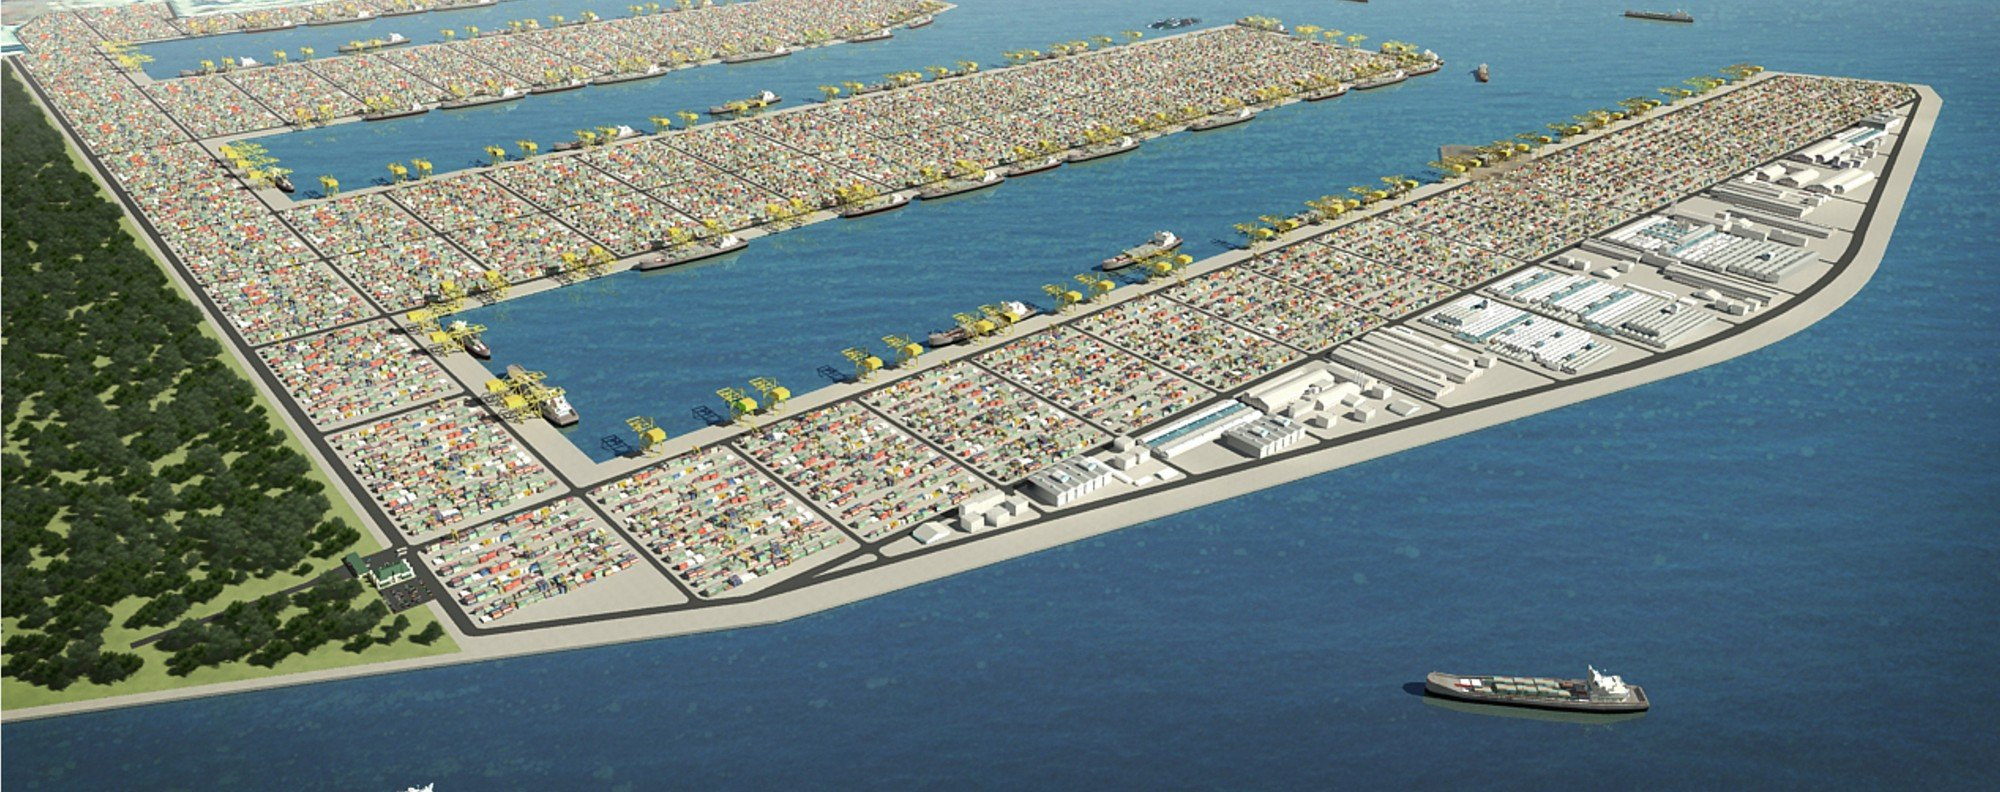 Artist's impression of the Tuas mega port. Photo: Handout